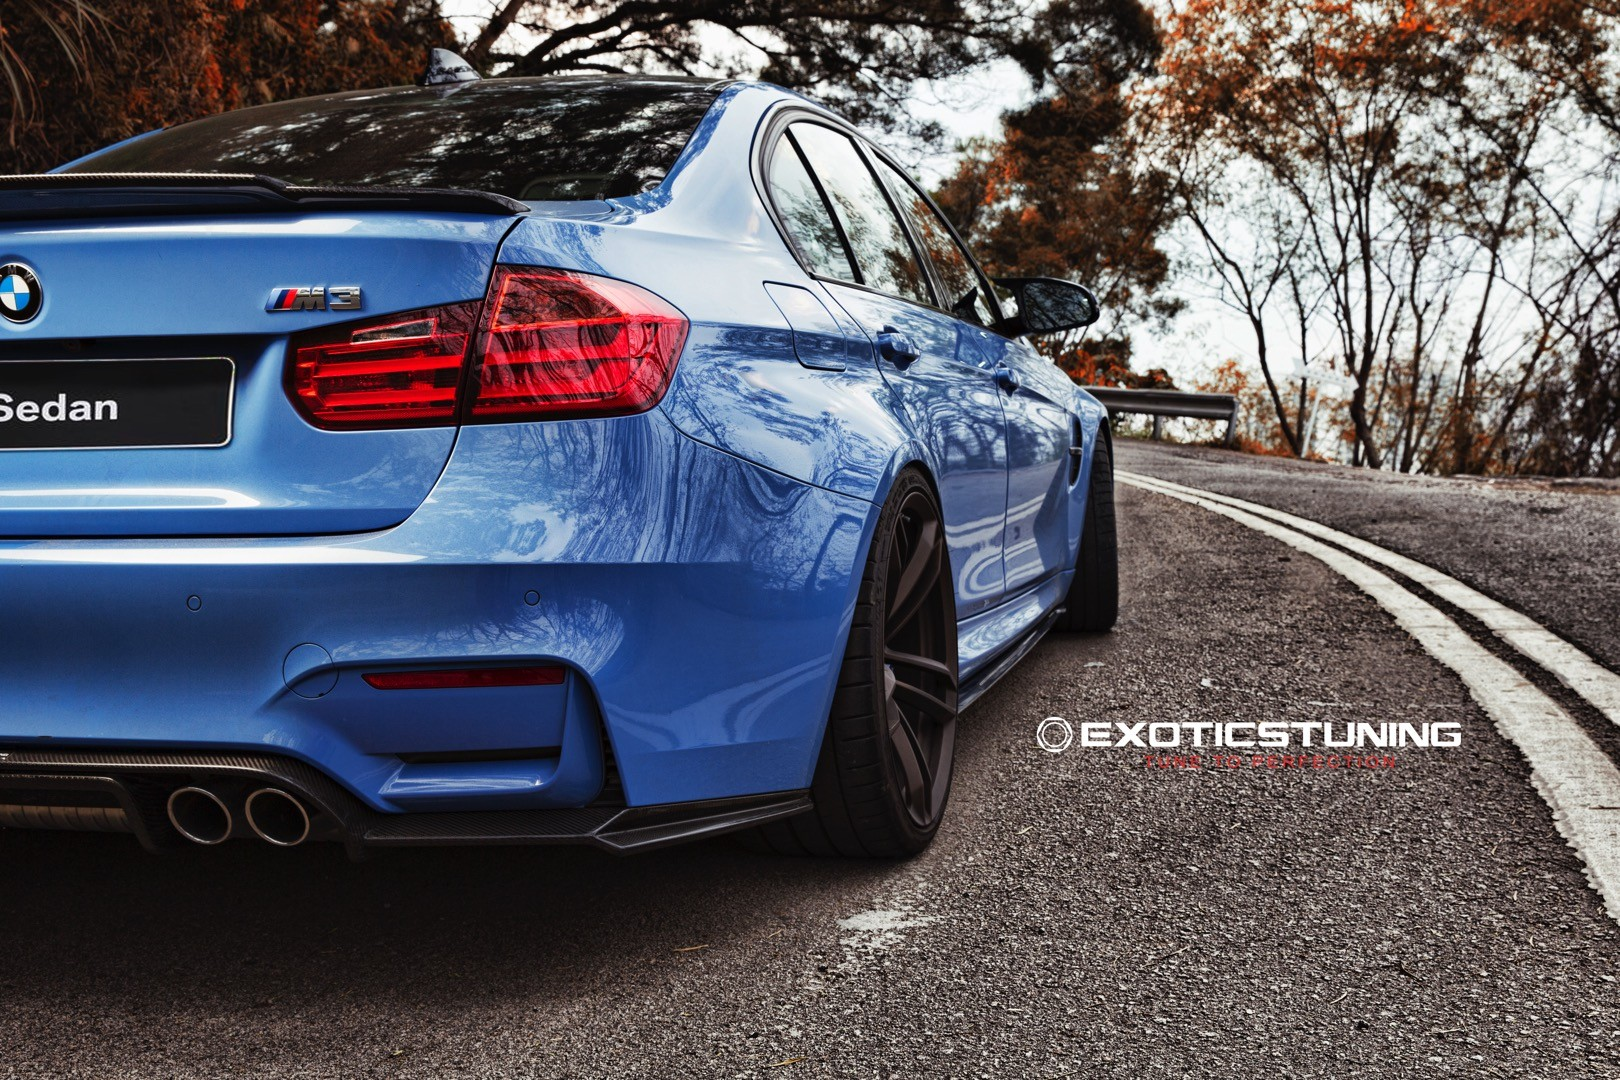 bmw f80 m3 gets a fresh look with exotics tuning 39 s kit. Black Bedroom Furniture Sets. Home Design Ideas